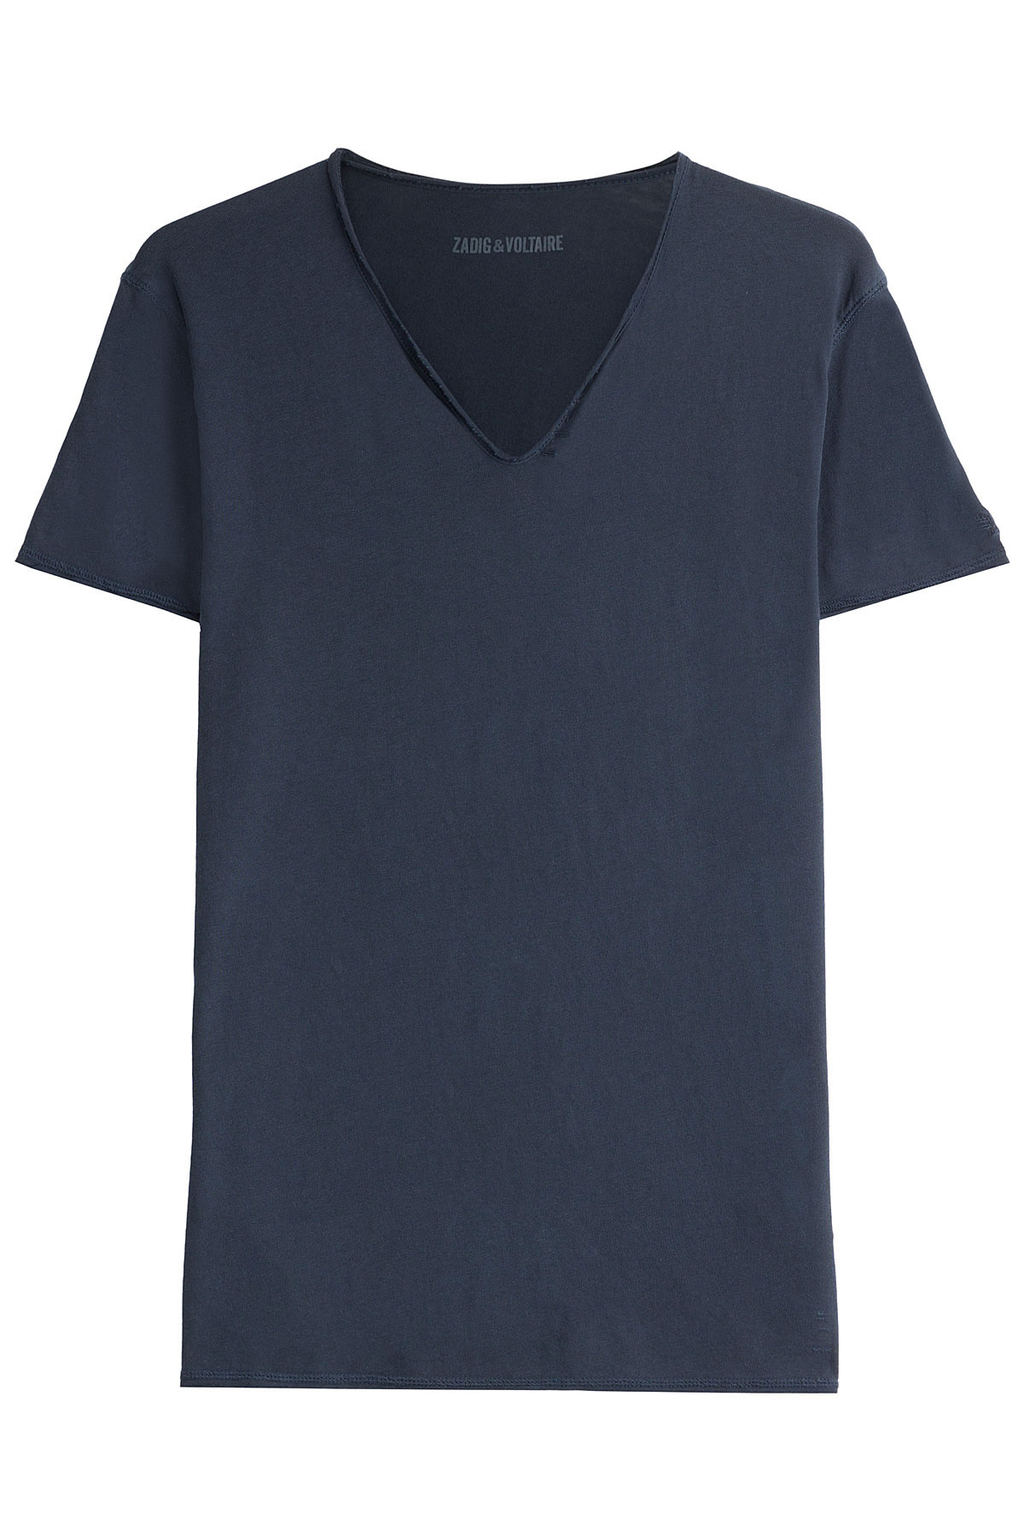 Monas Mc Overdyed T Shirt - neckline: v-neck; pattern: plain; style: t-shirt; predominant colour: navy; occasions: casual; length: standard; fibres: cotton - 100%; fit: straight cut; sleeve length: short sleeve; sleeve style: standard; texture group: cotton feel fabrics; pattern type: fabric; wardrobe: basic; season: a/w 2016